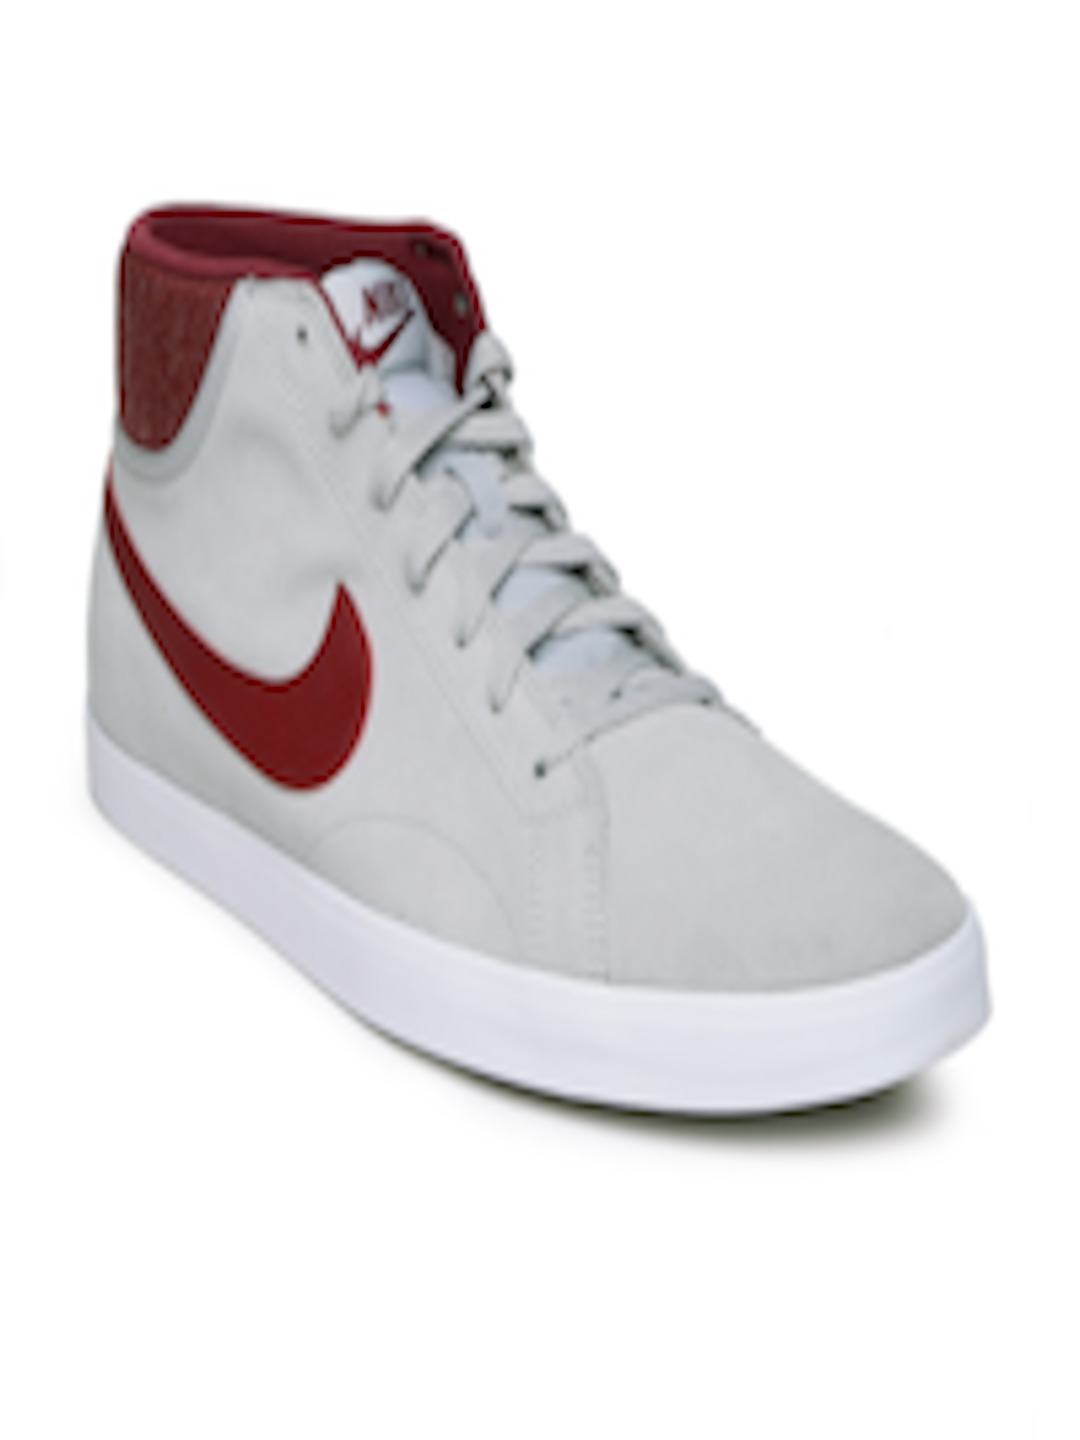 online store 353cf 9f52b Buy Nike Men Grey   Maroon Suede EASTHAM MID Casual Shoes - Casual Shoes  for Men 1003503   Myntra